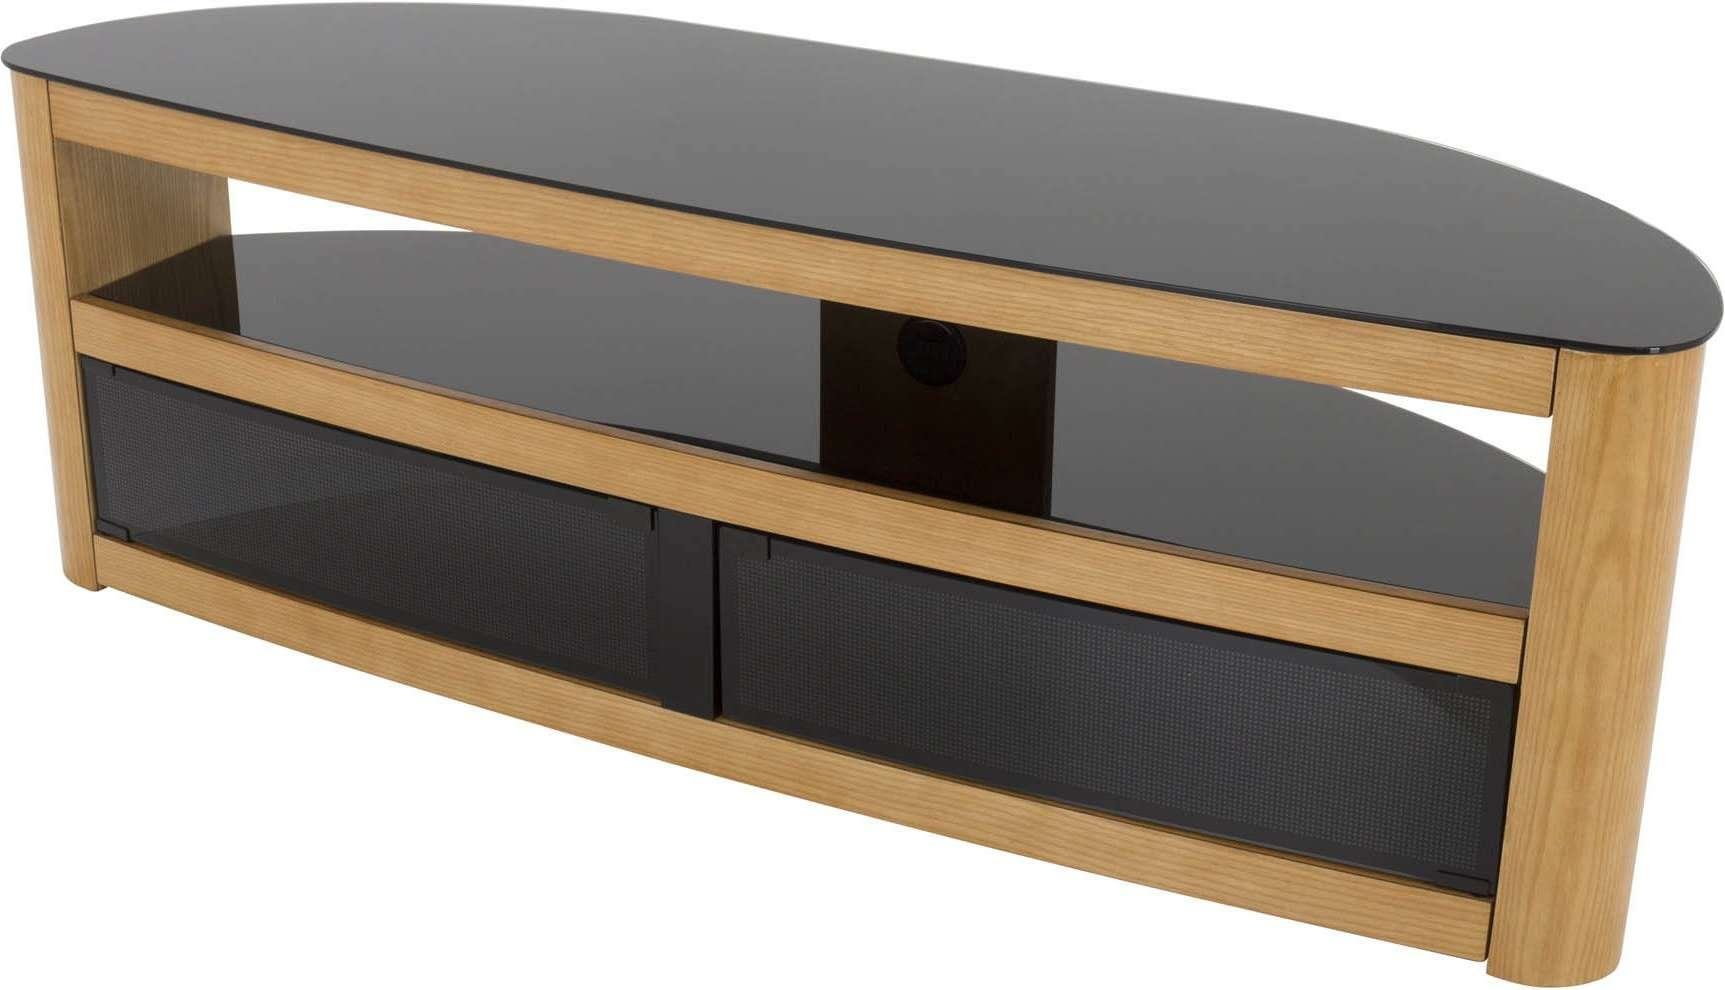 Avf Fs1500buro Tv Stands Intended For Avf Tv Stands (View 9 of 15)